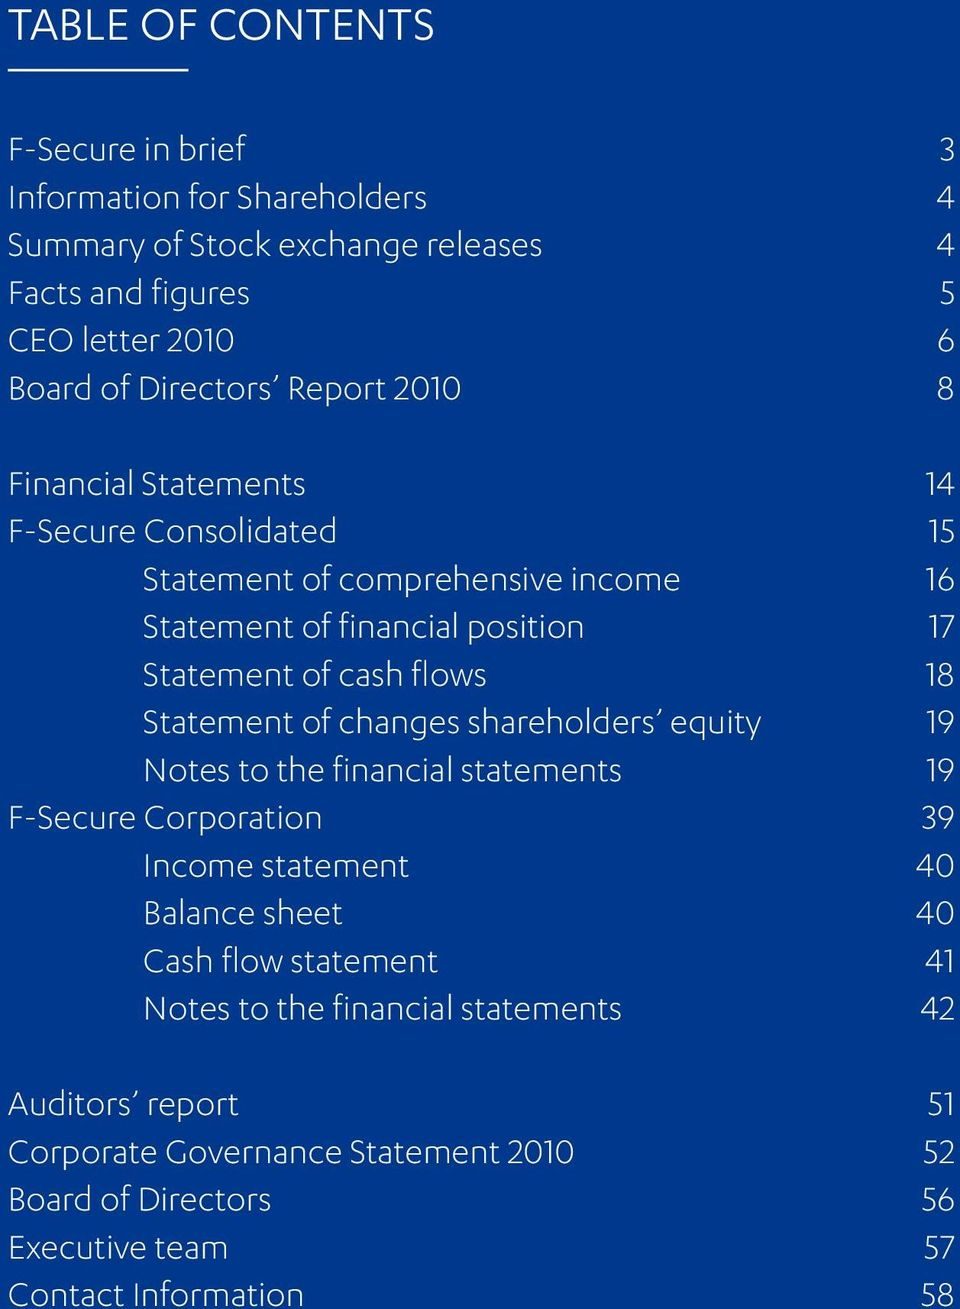 Statement of changes shareholders equity 19 Notes to the financial statements 19 F-Secure Corporation 39 Income statement 40 Balance sheet 40 Cash flow statement 41